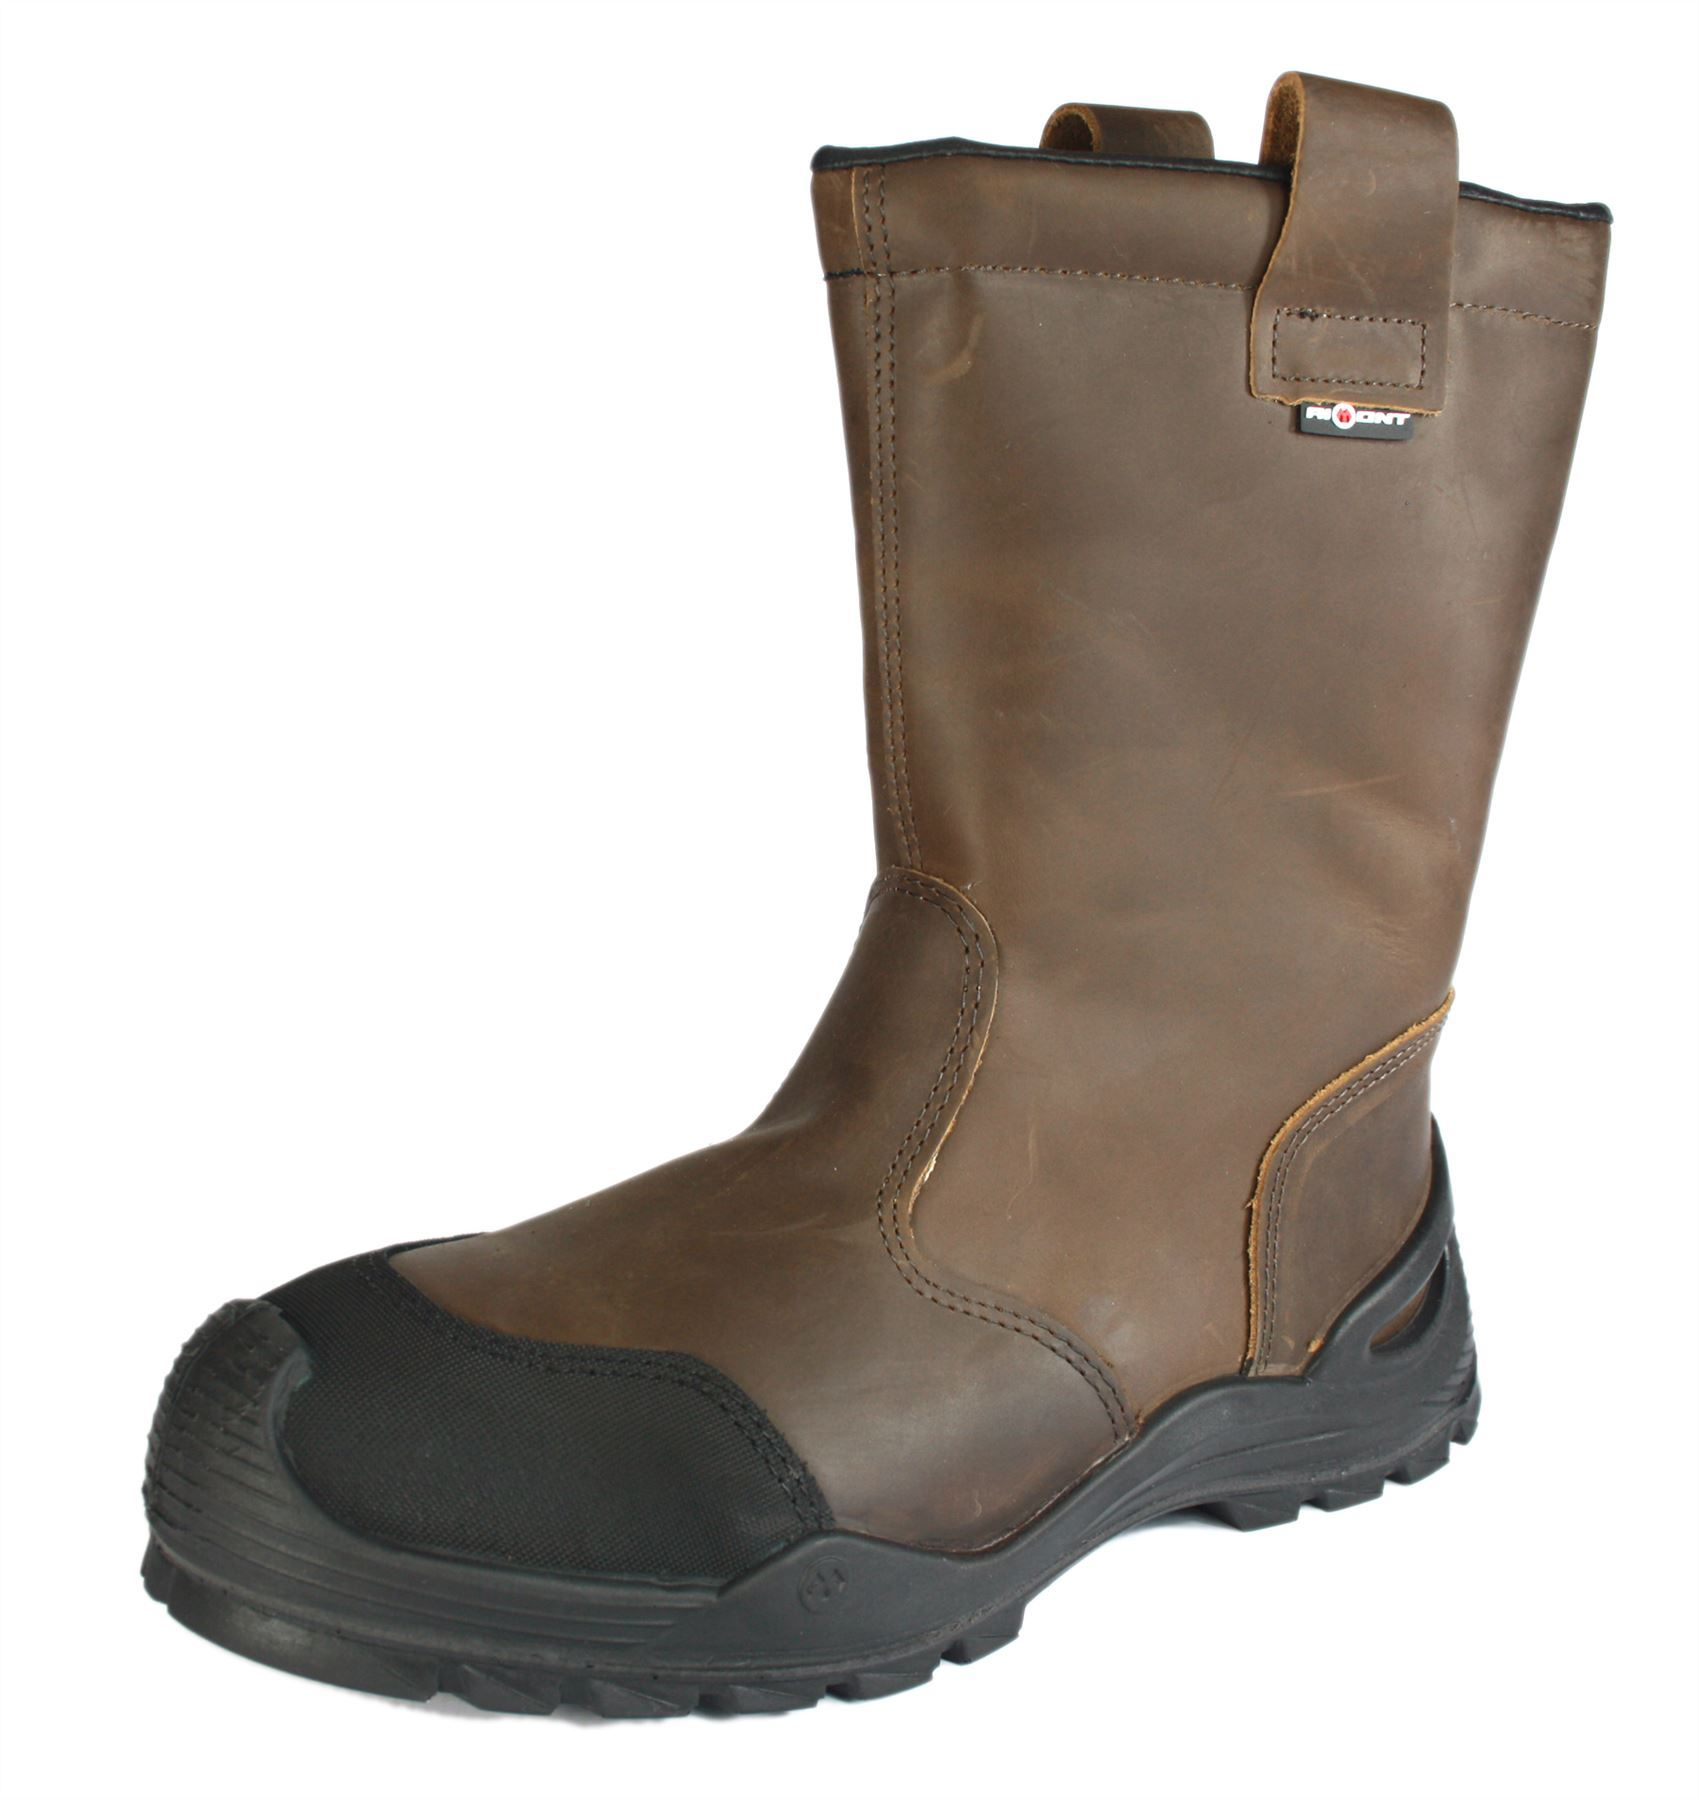 Mens New Brown Leather Safety Rigger Work Boots Water Resistant Steel Toe